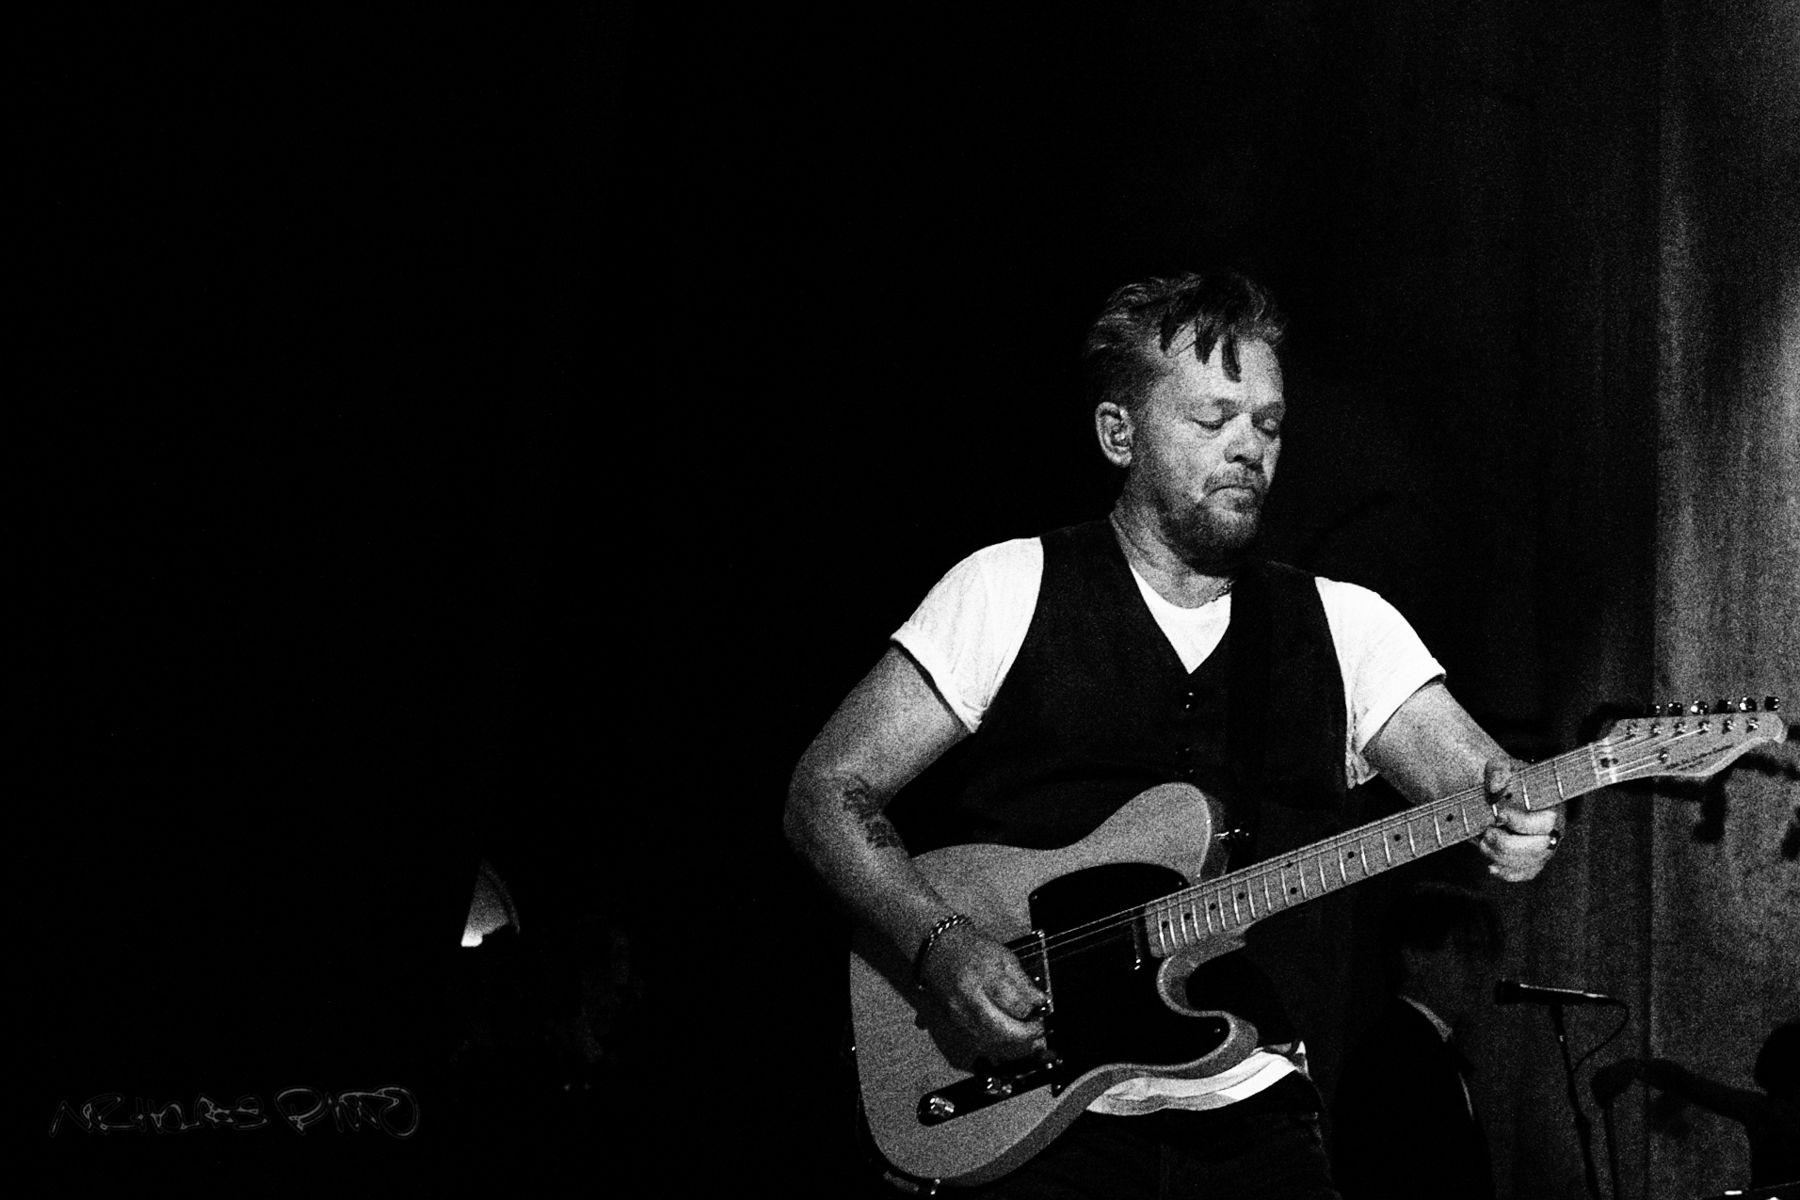 John Mellencamp giving a raw and beautiful performance in Chicago.